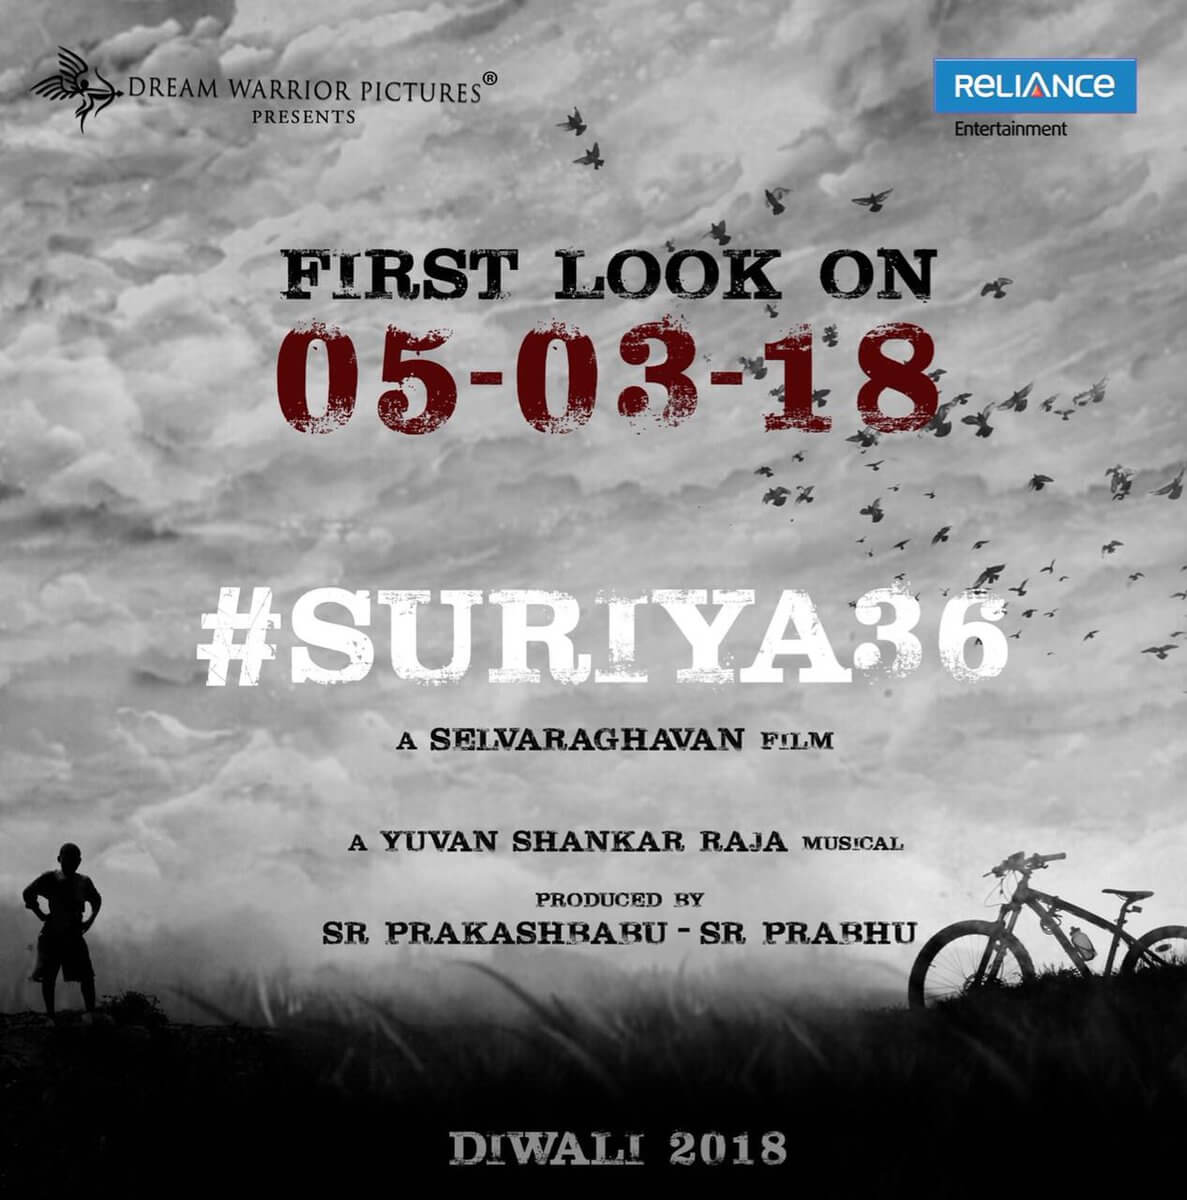 Actor Suriya New Movie First Look Poster Released on March 5th, Image Credit - Twitter (@DreamWarriorpic)